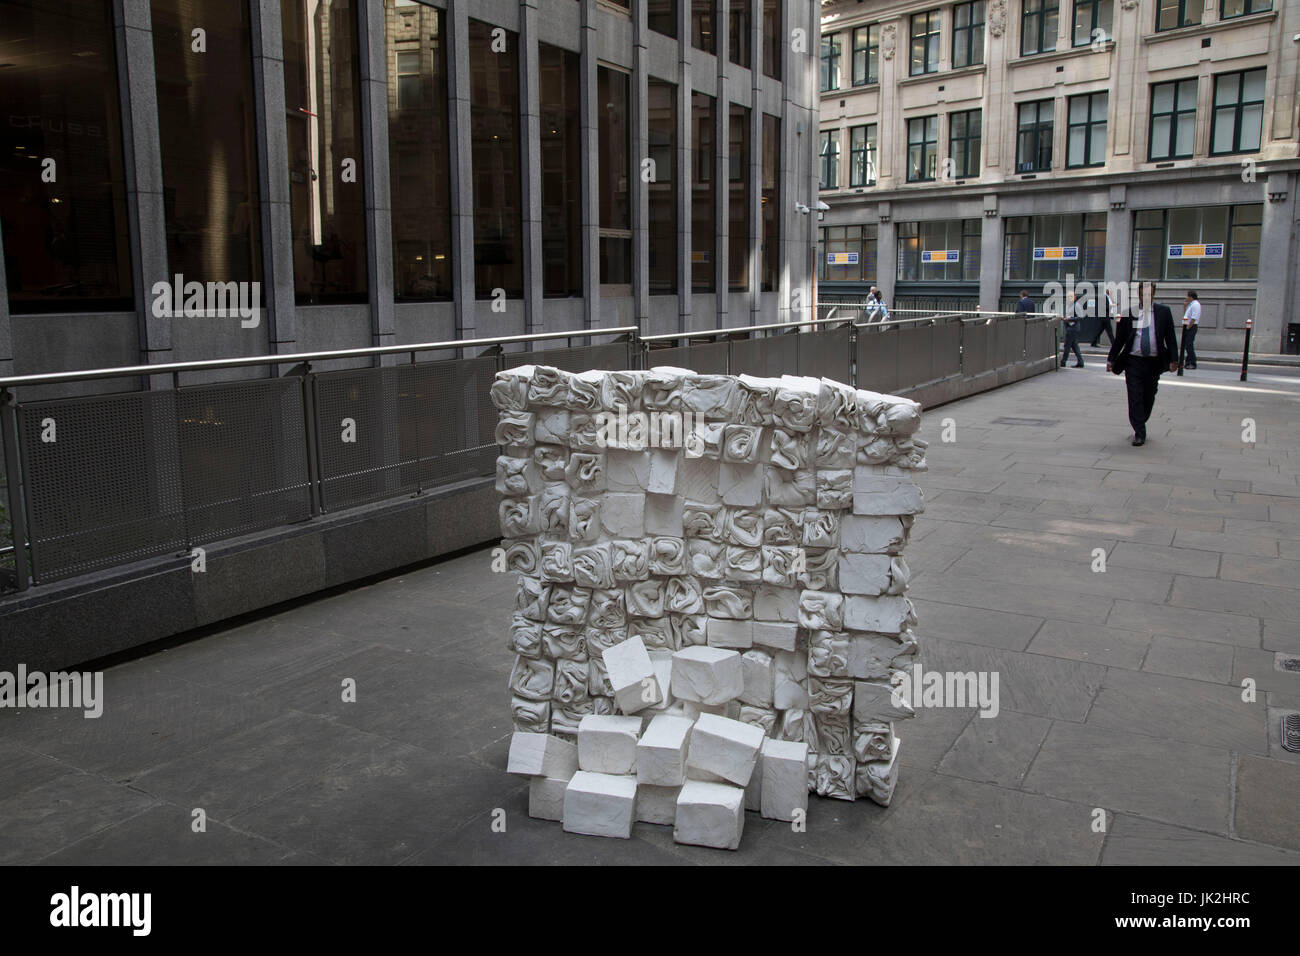 Sculpture in the City on July 17th 2017 in the City of London, England, United Kingdom. Each year, the critically - Stock Image